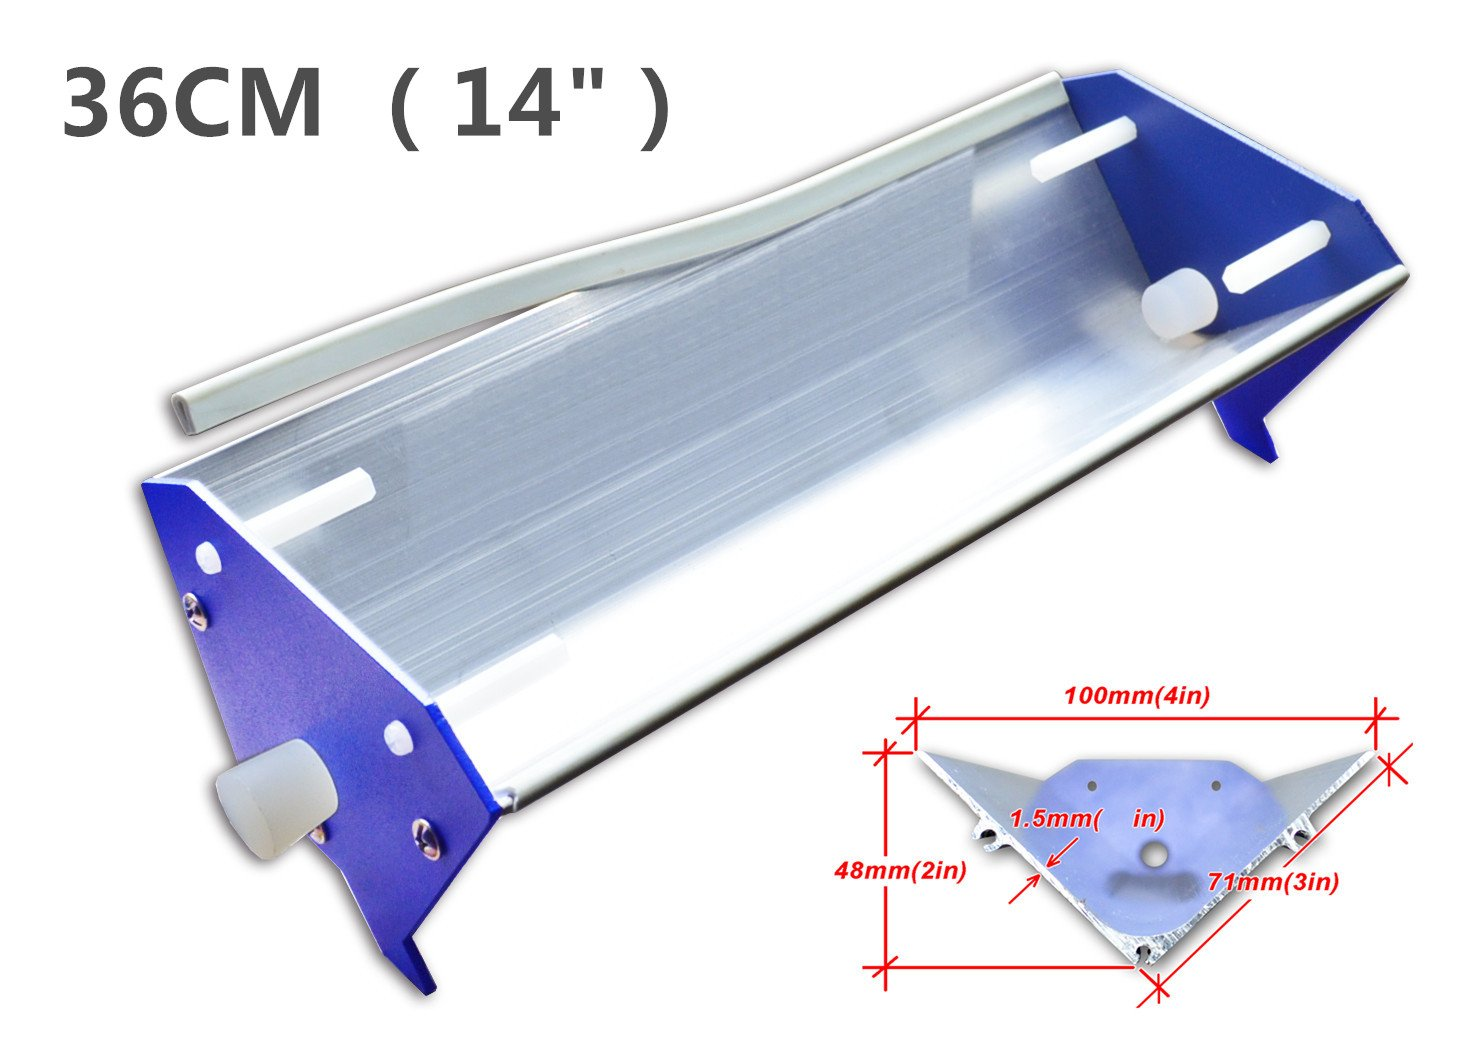 Emulsion Scoop Coater Silk Screen Printing Aluminum Coating Tools DIY Apply (14 inch (36 cm))